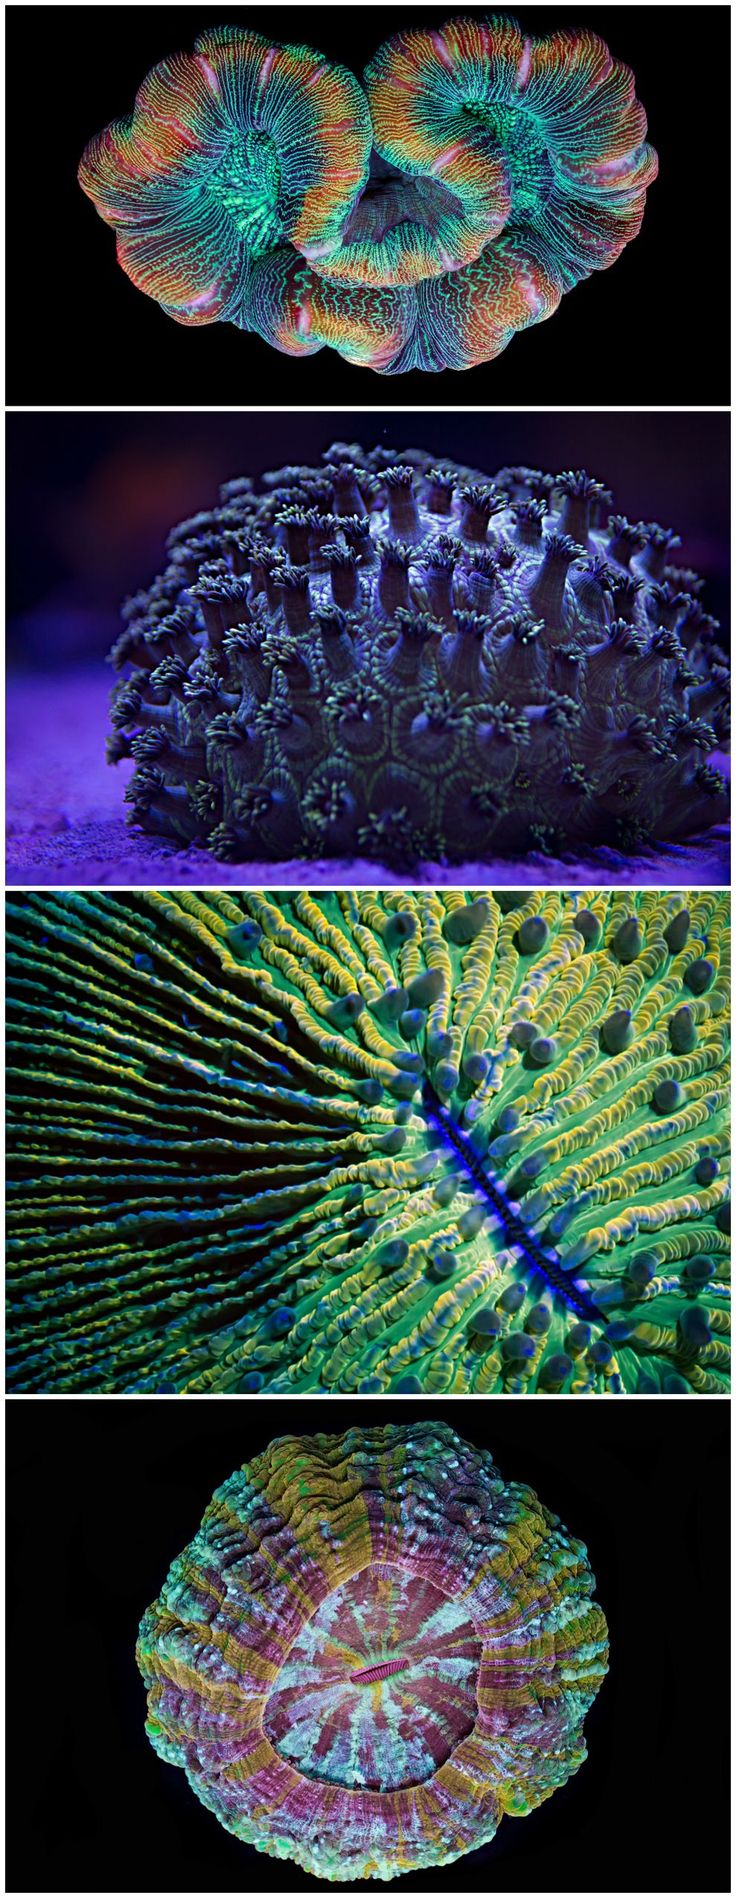 'Coral Colors' showcases the psychedelic beauty of marine invertebrates.